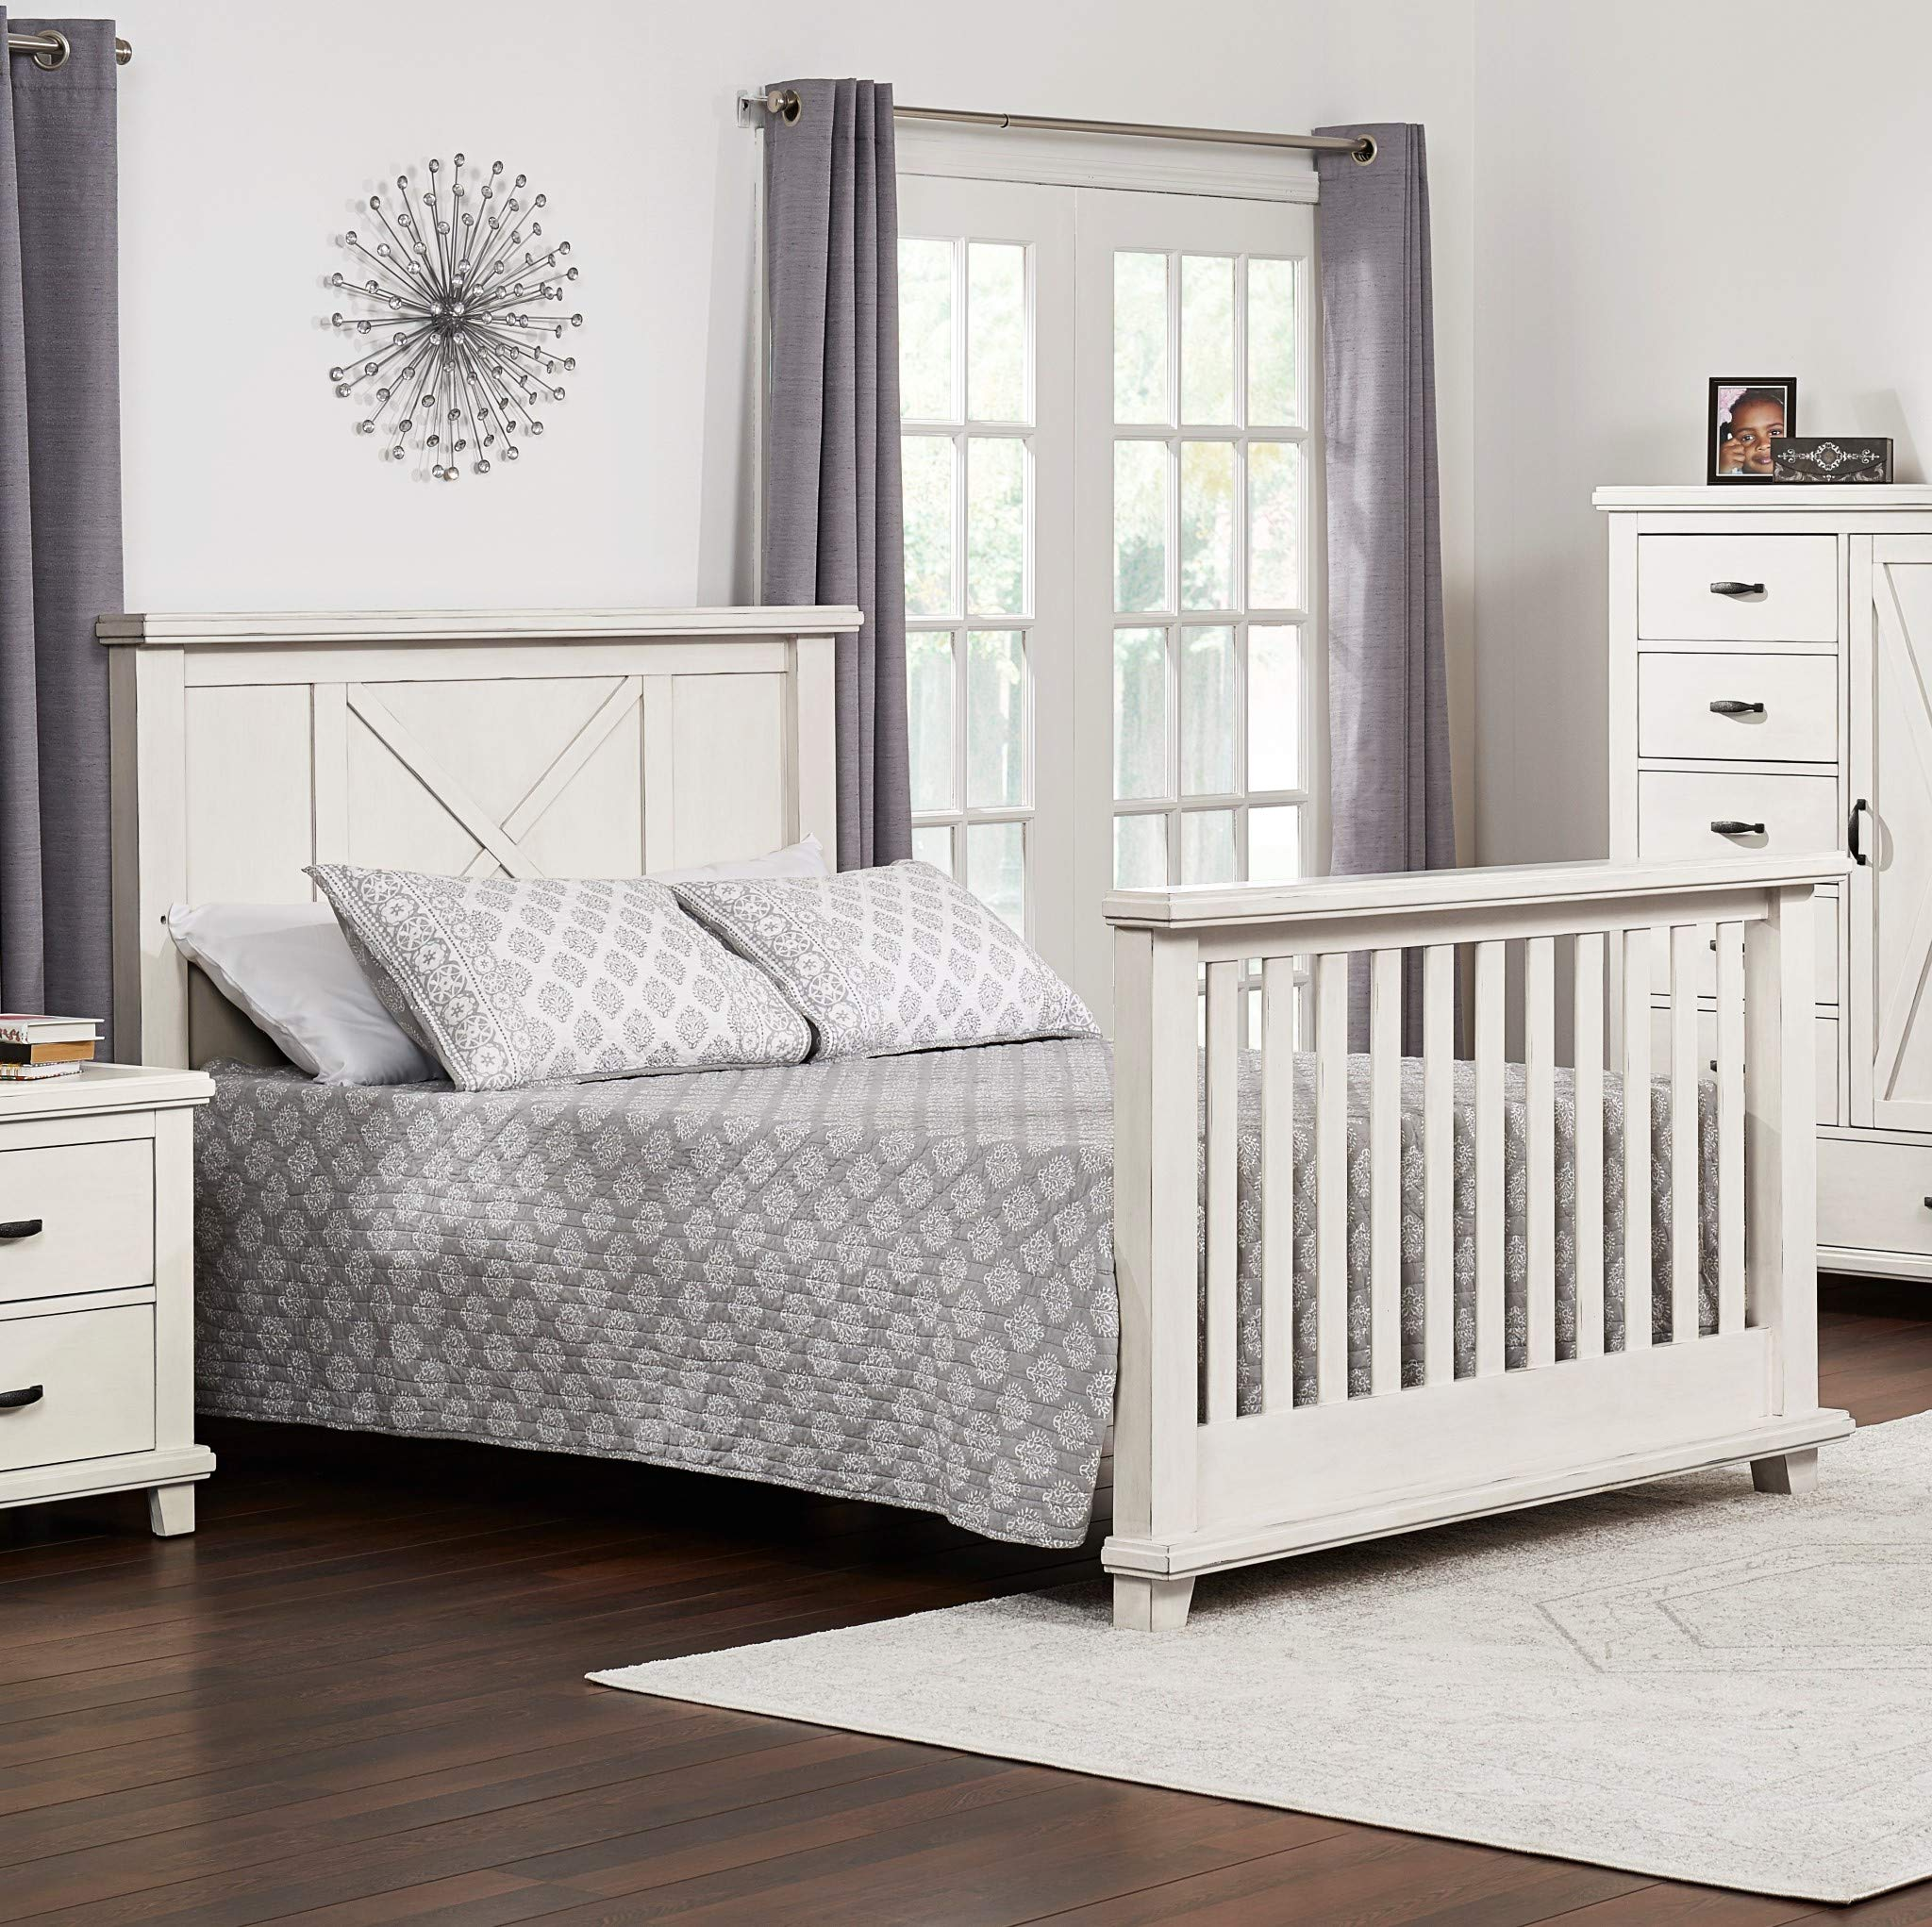 Oxford Baby Lexington Full Bed Conversion Kit, Heirloom White by Oxford Baby (Image #3)